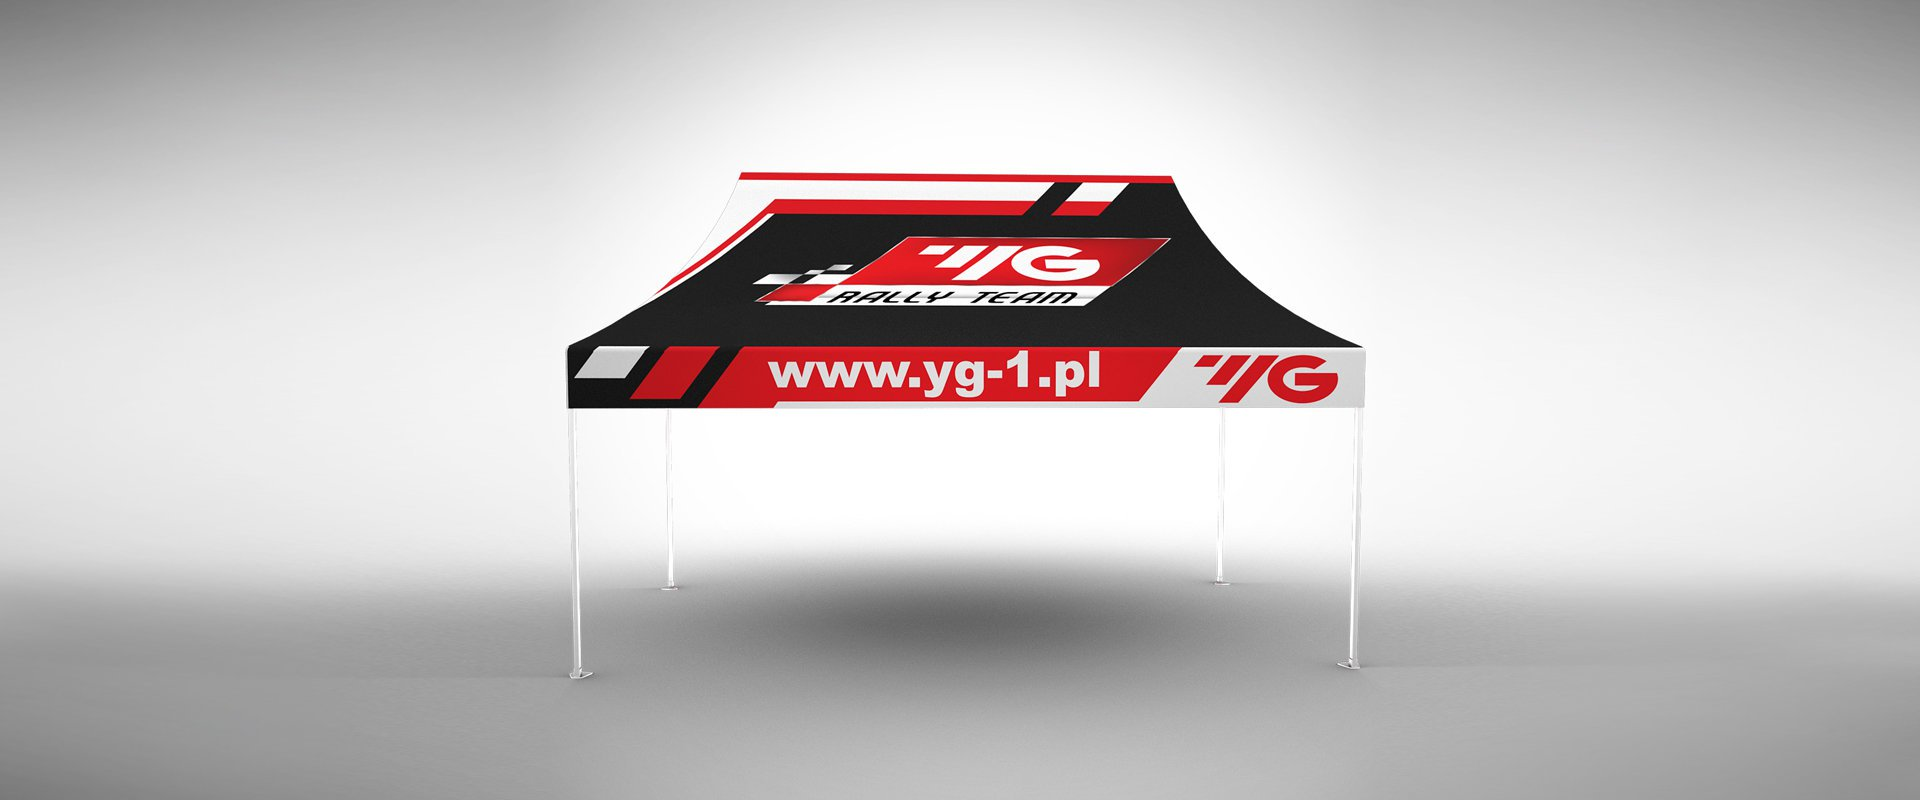 YG-1 Rally Team #1